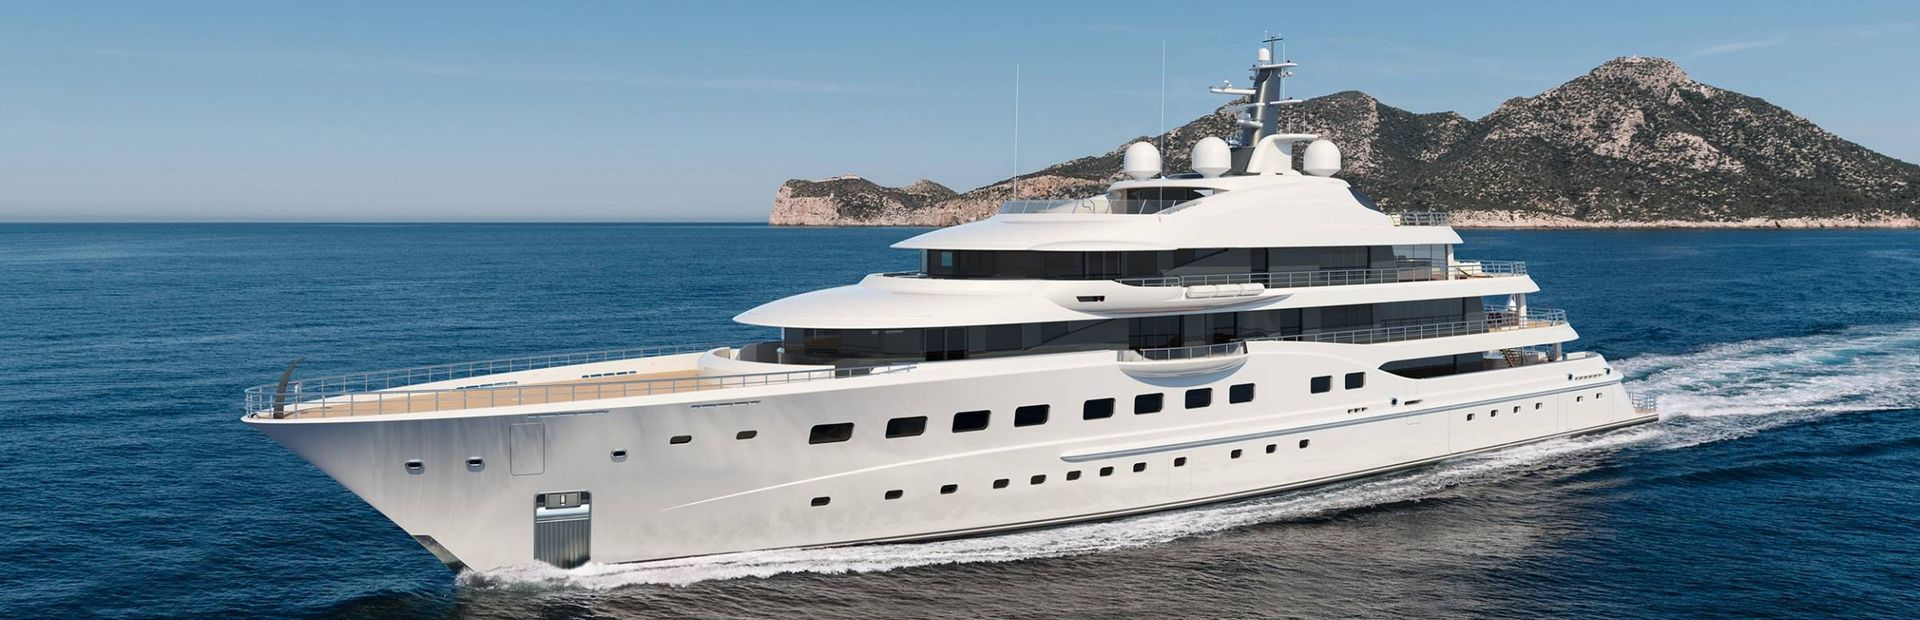 Amels 272 Yacht Charter